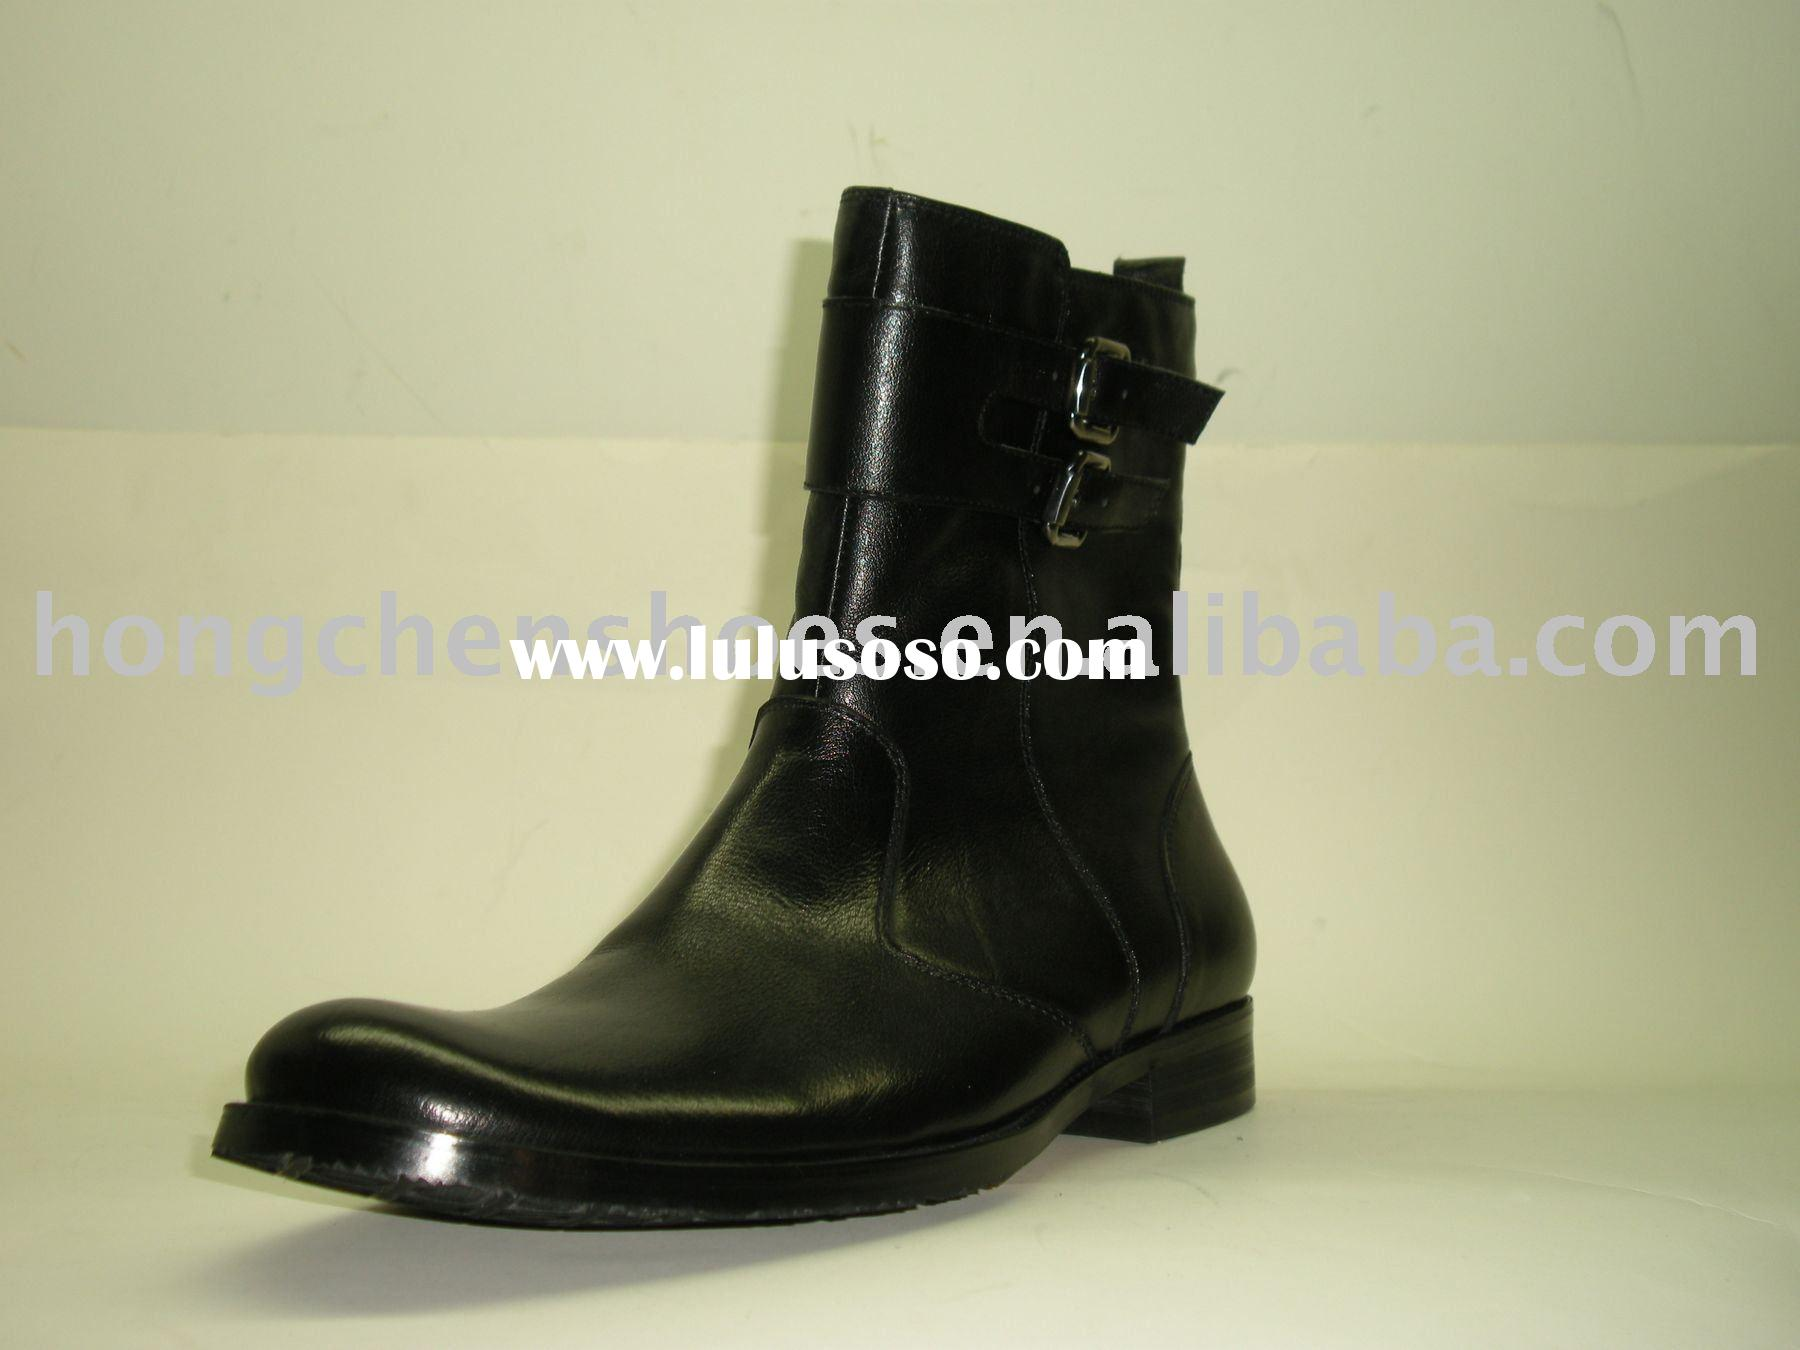 2011 The latest winter male boots men's dress shoes